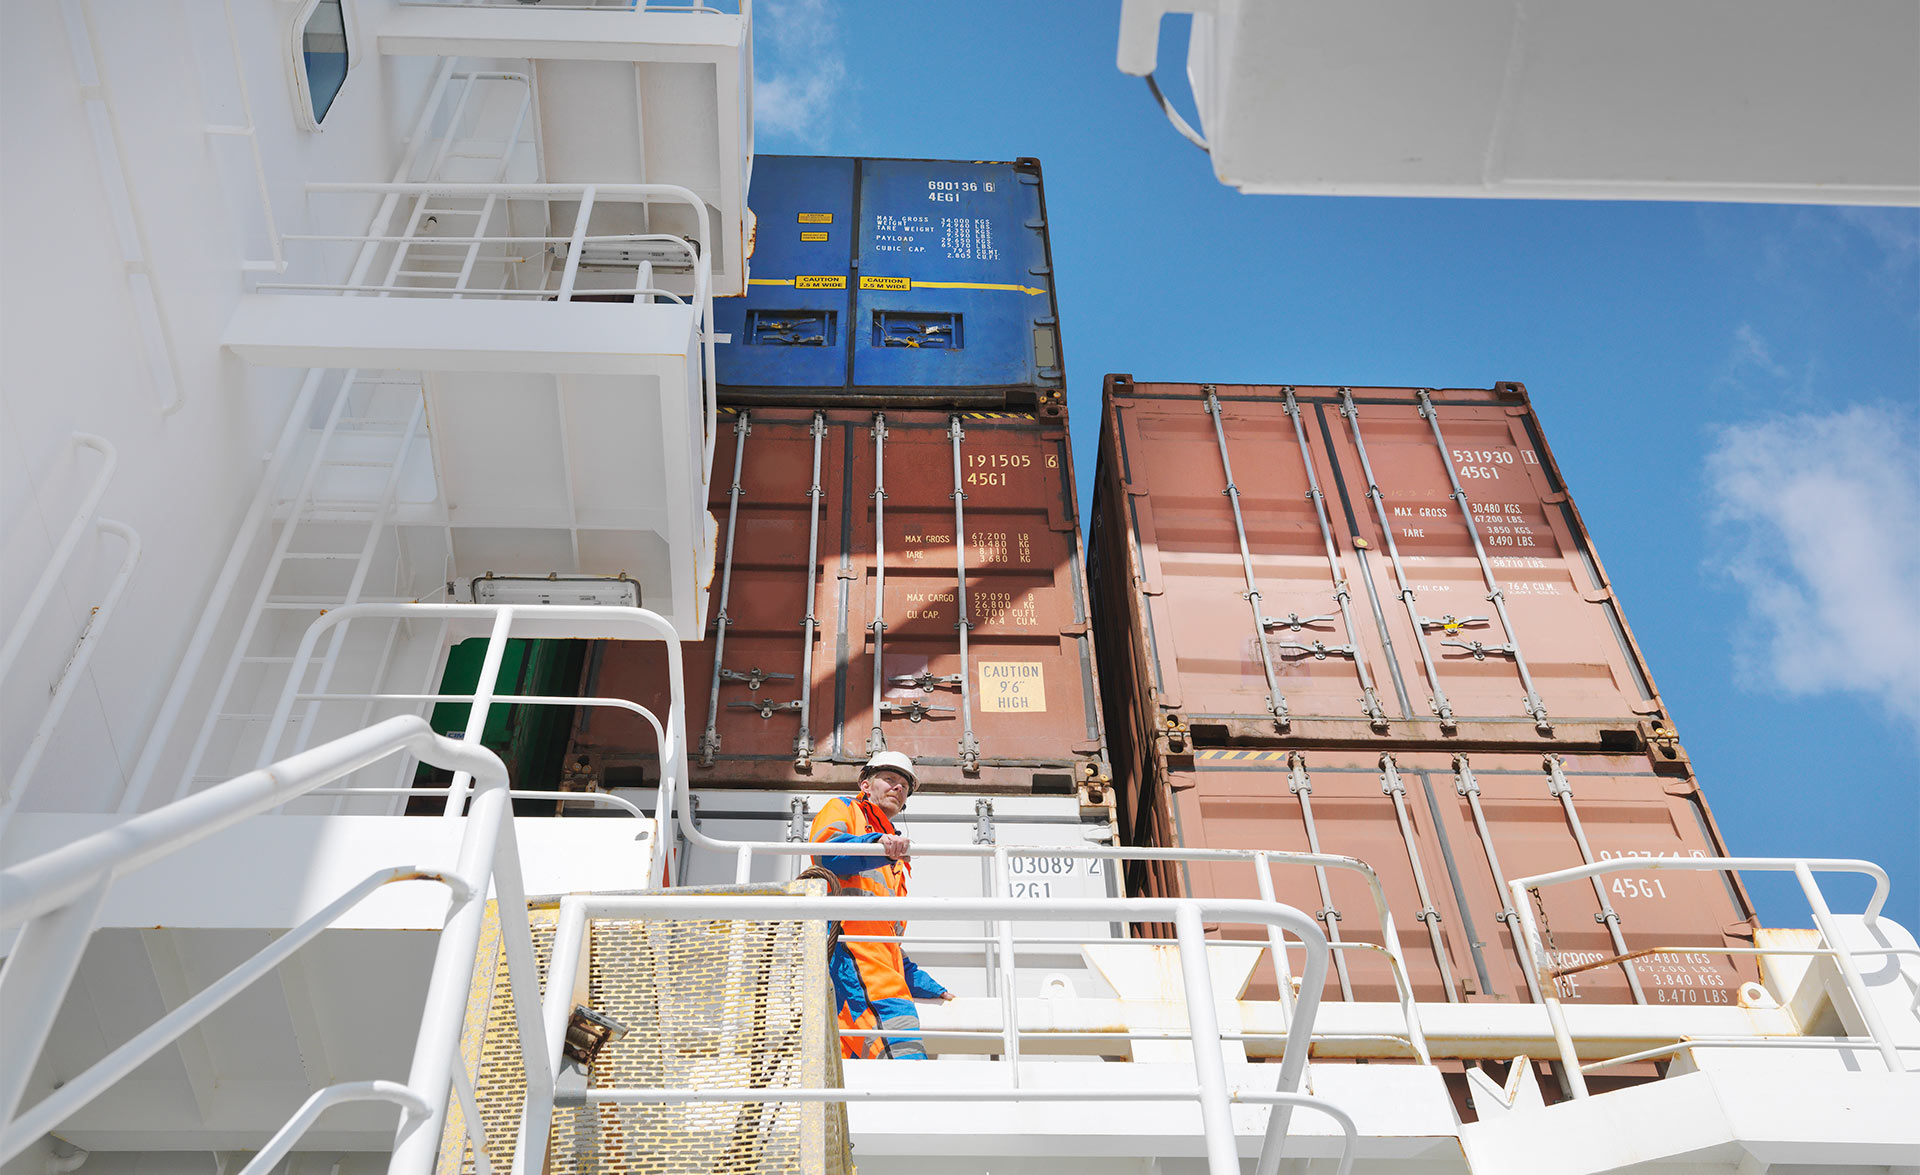 A person walks around on a cargo ship fully loaded with containers